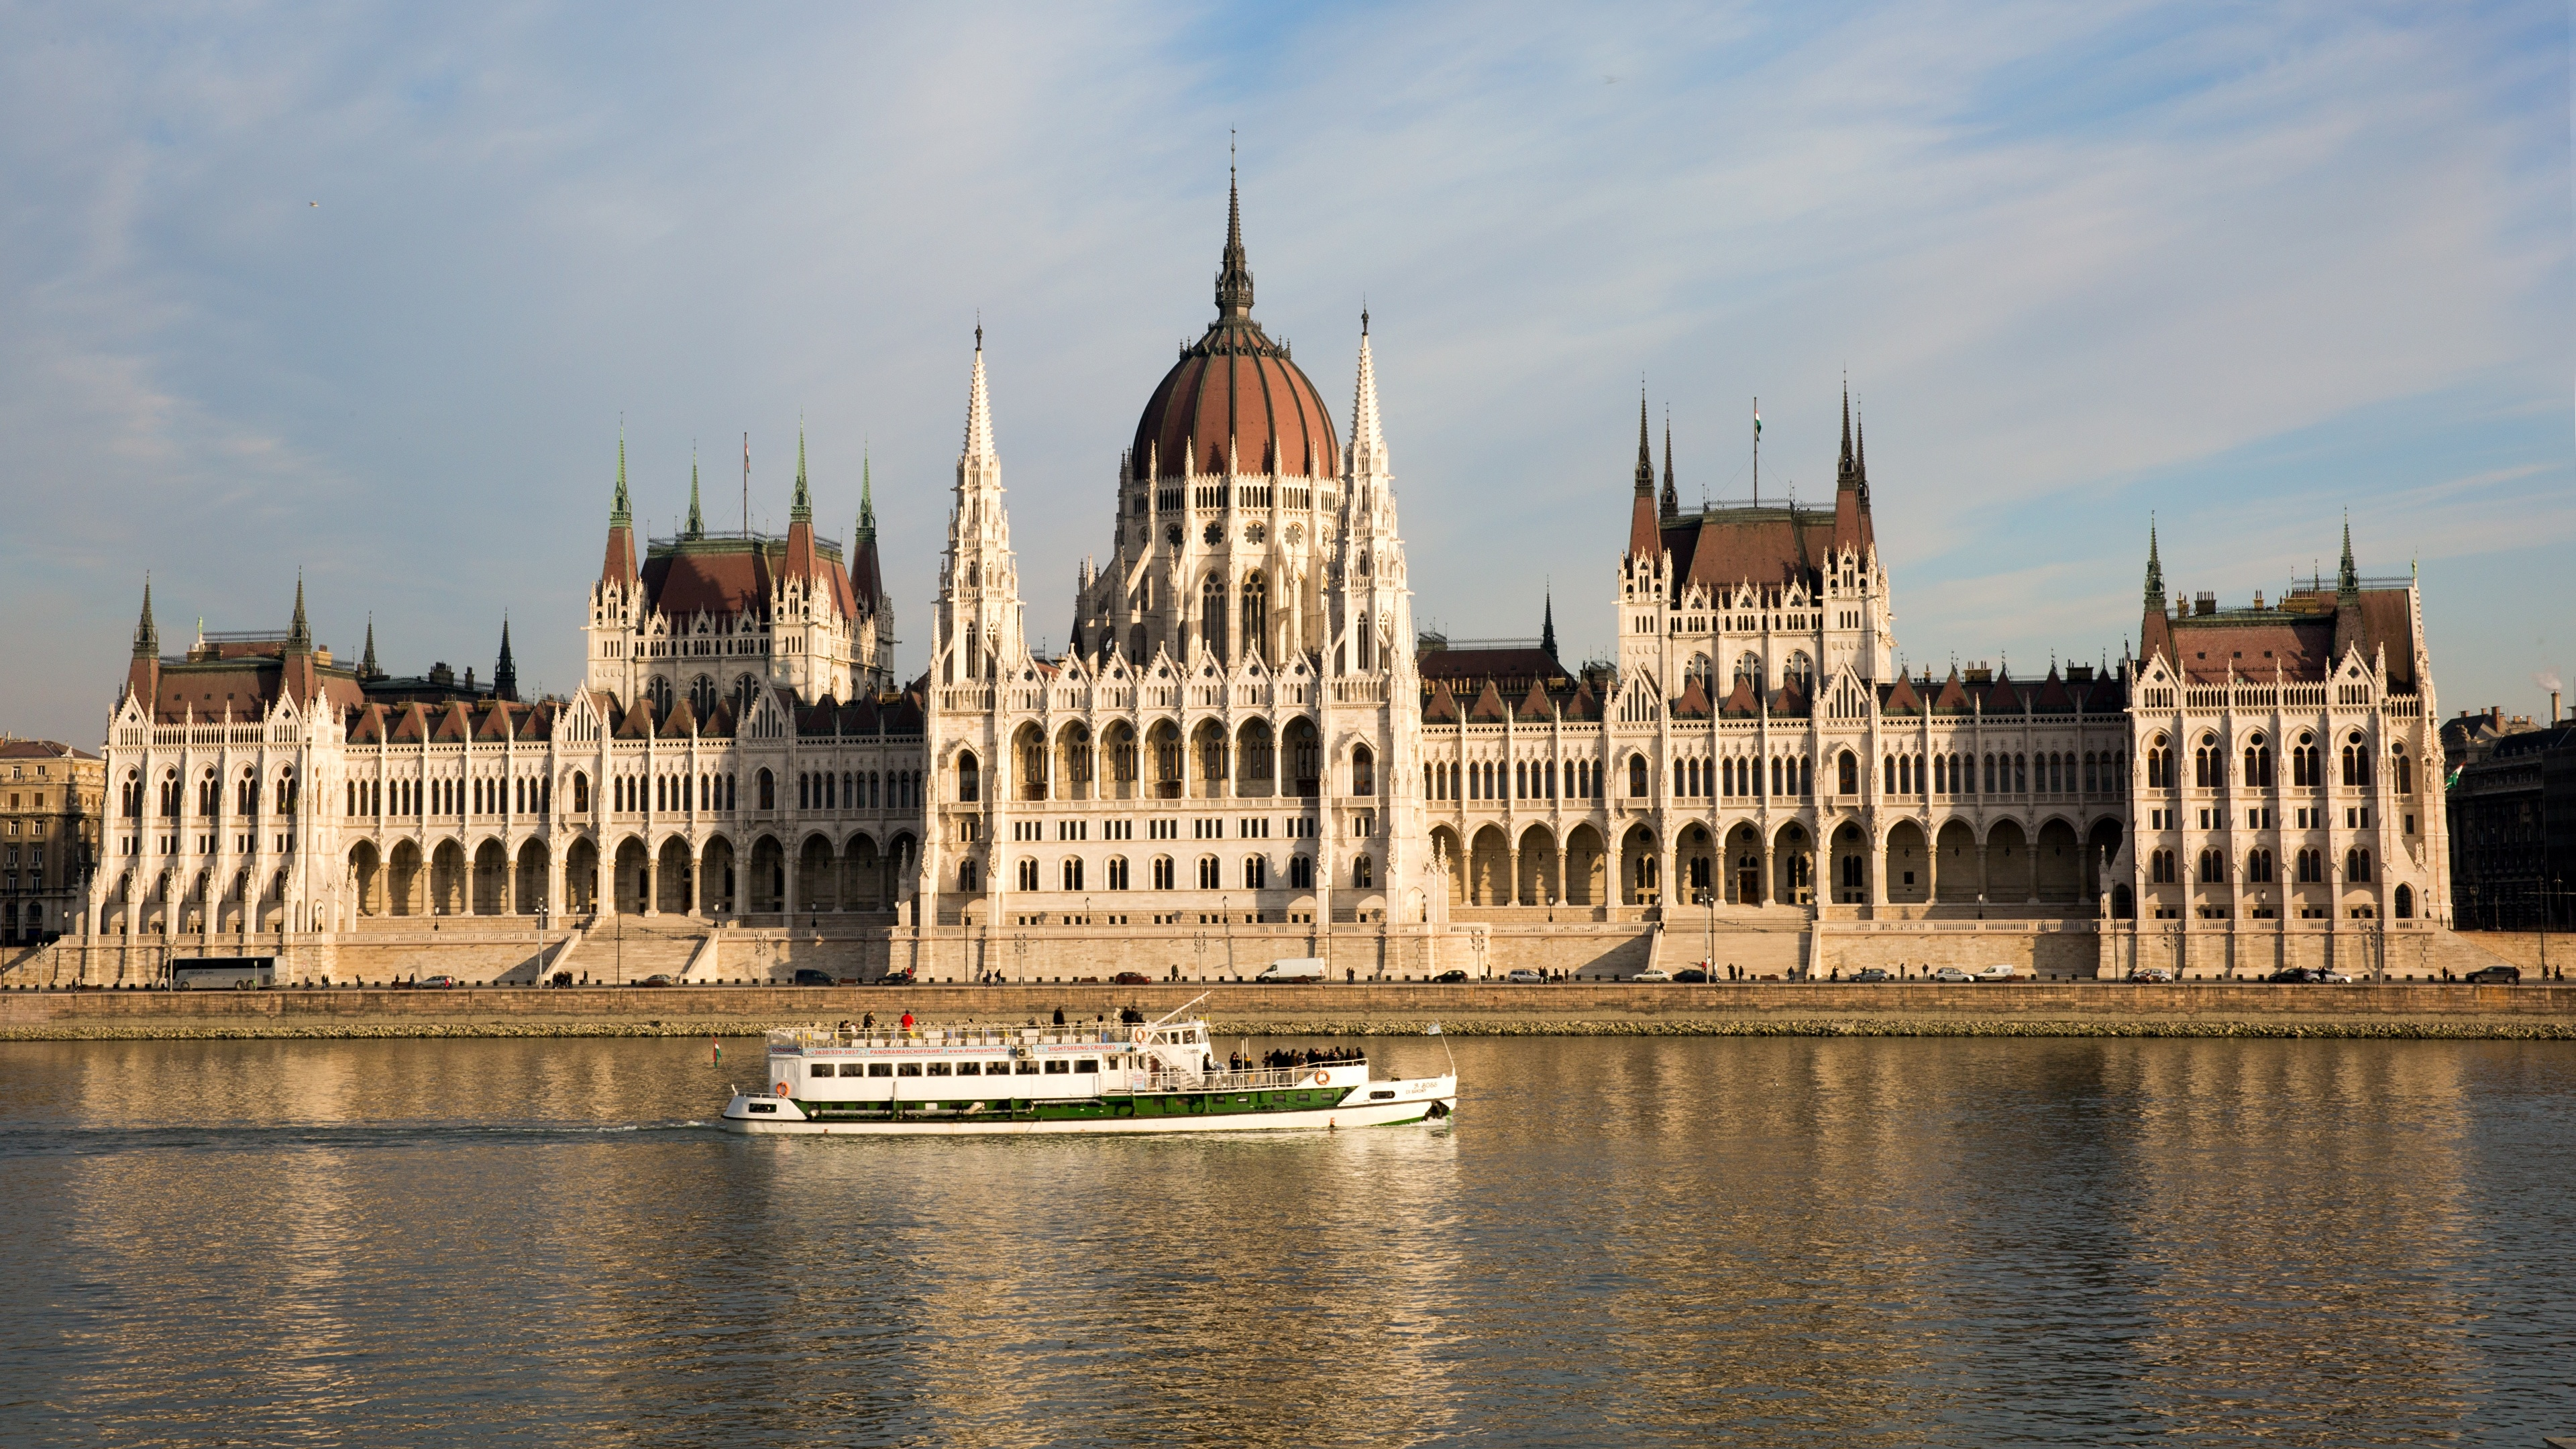 Image Budapest Hungary Danube Riverboat river Cities 3840x2160 Rivers